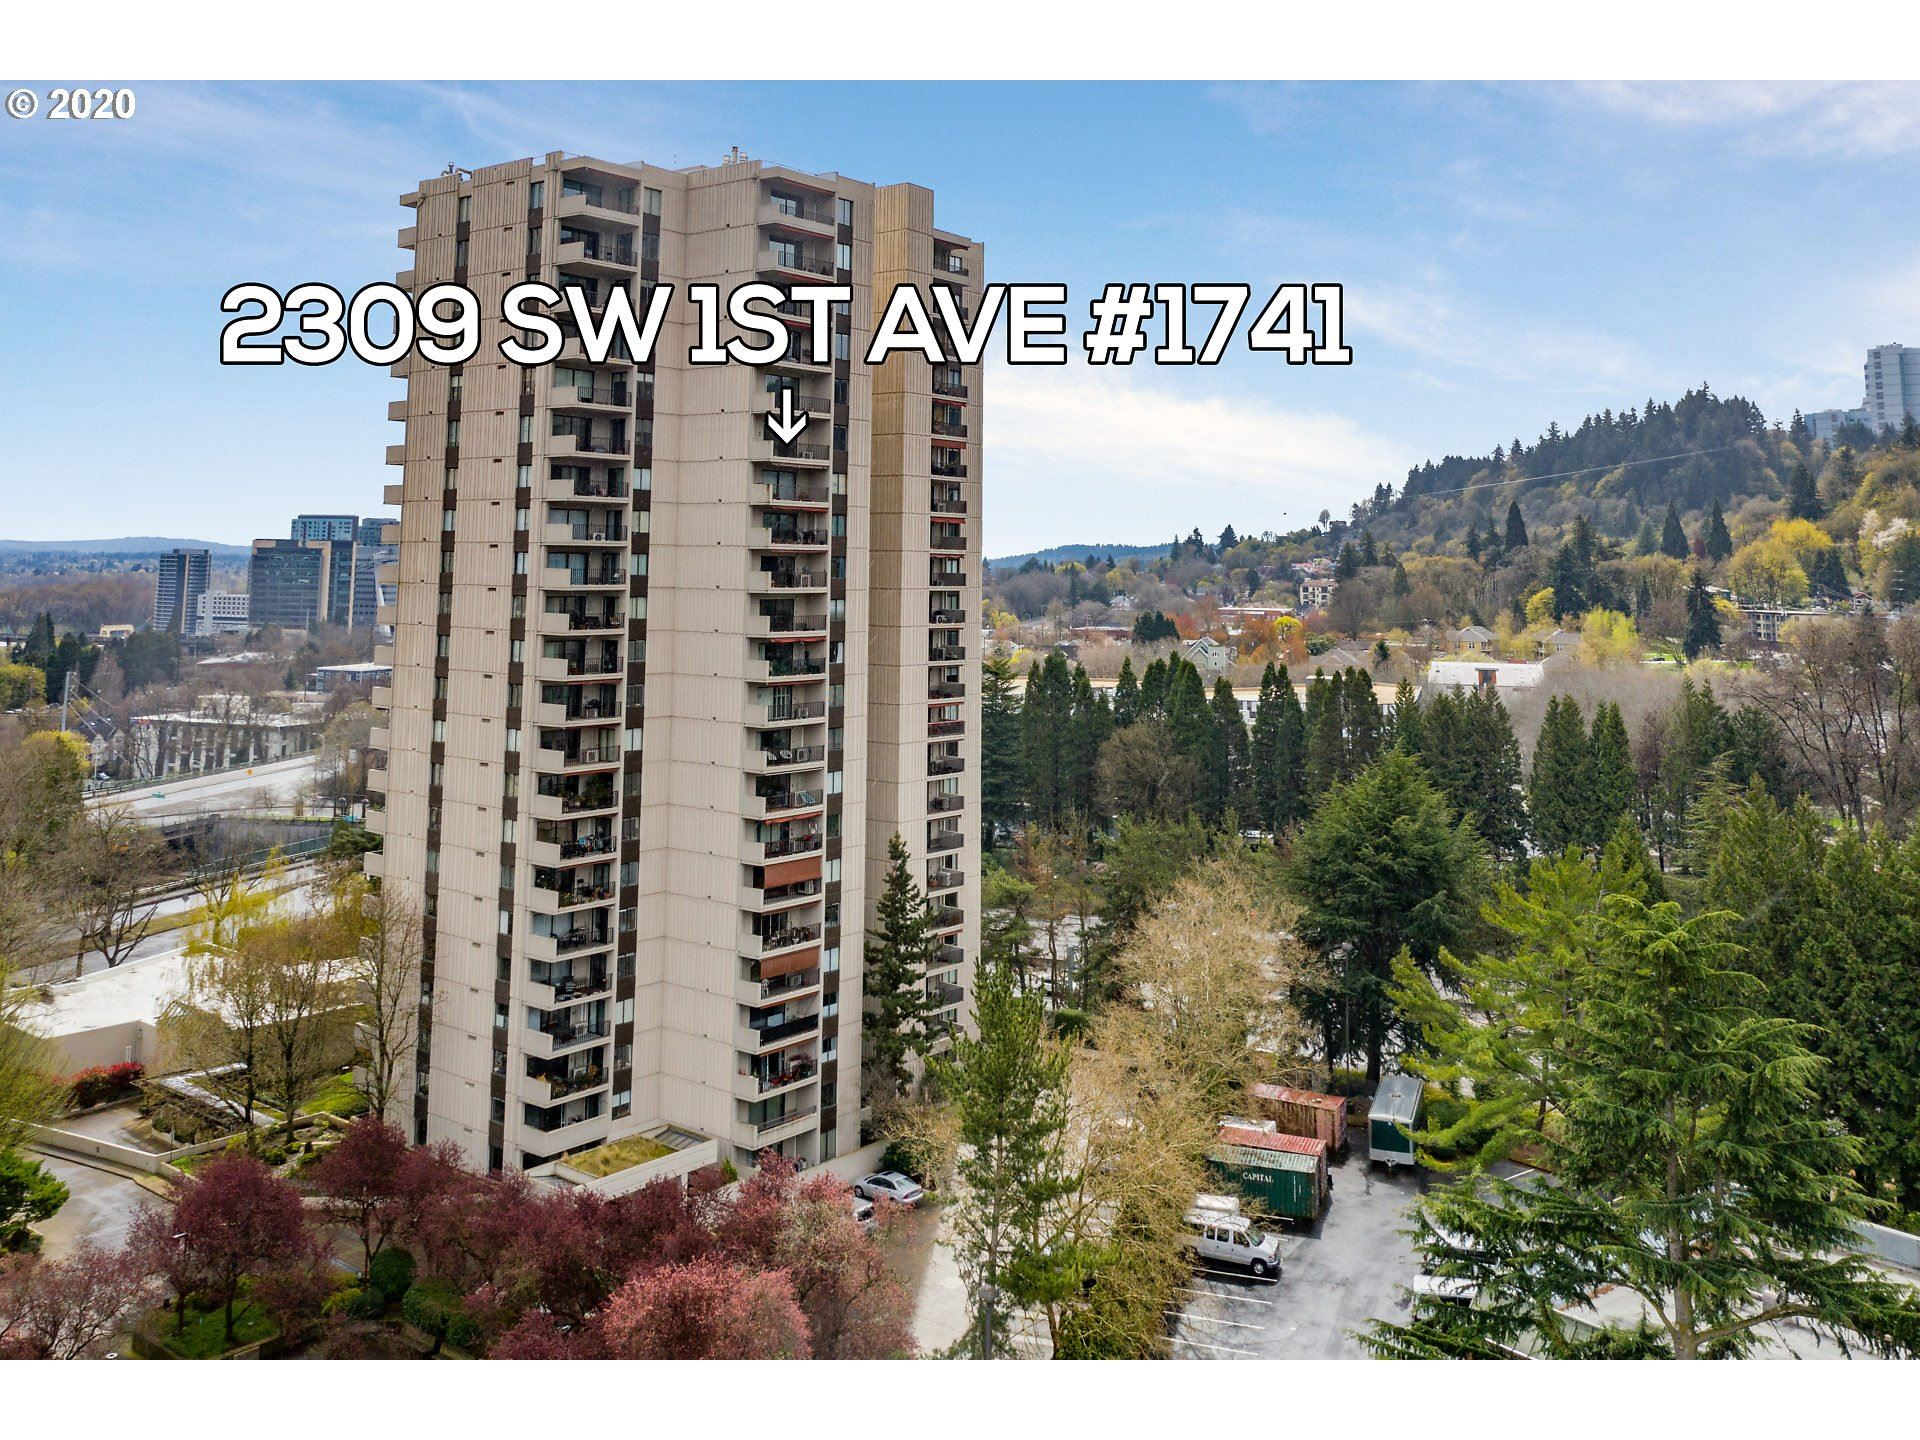 2309 SW 1ST AVE #1741, Portland, OR 97201 - MLS#: 20505175